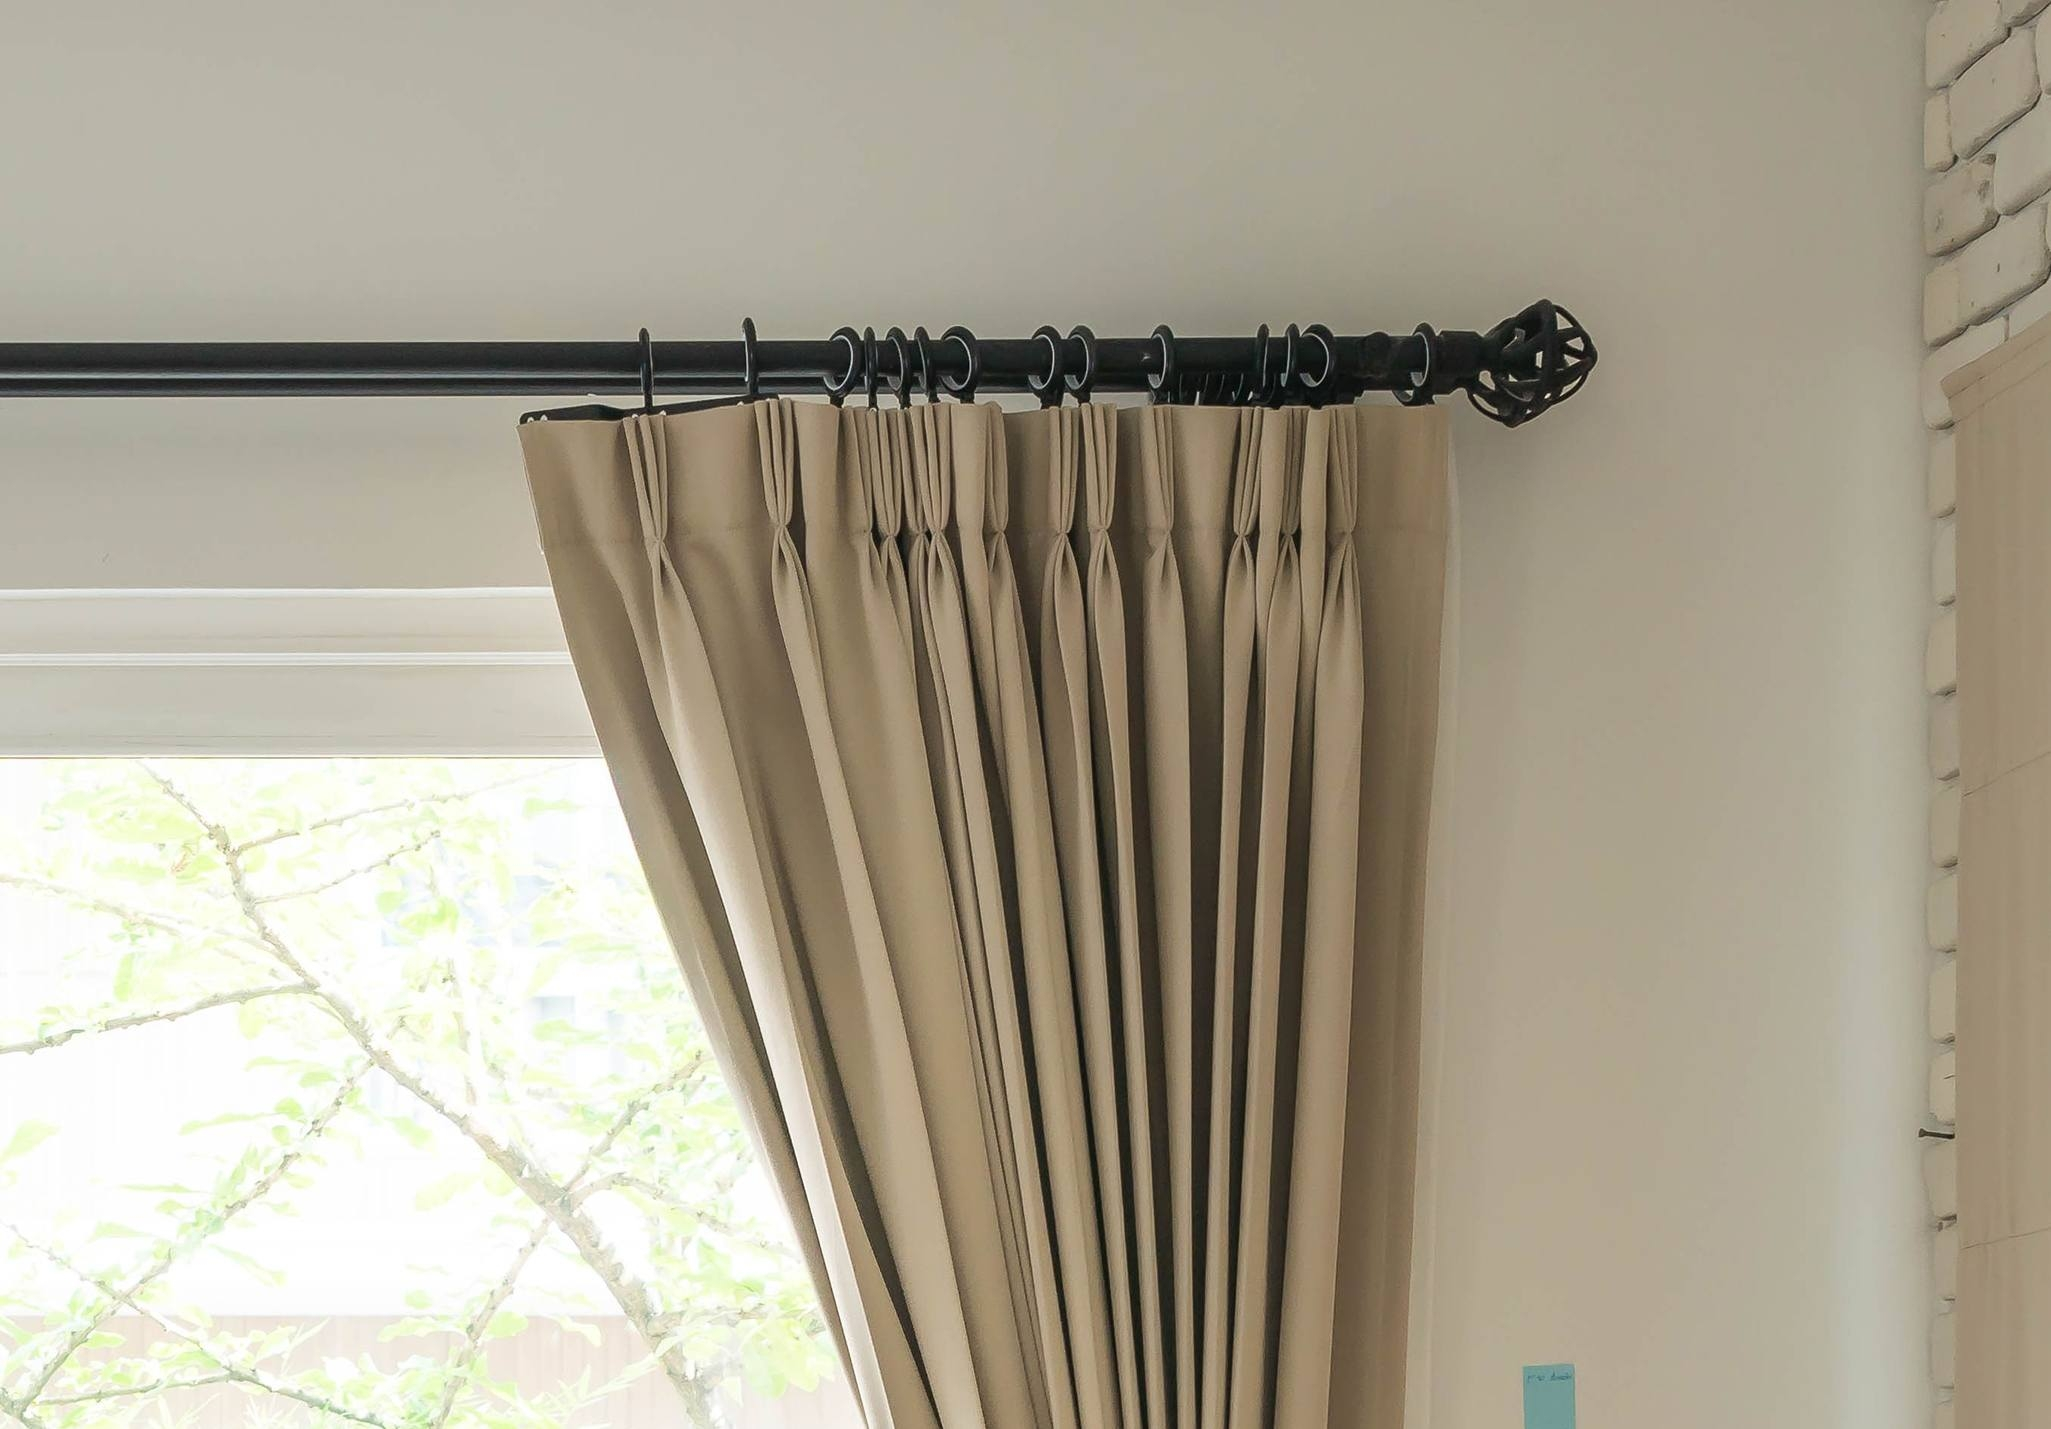 Hanging Curtains On Poles Designs Windows Curtains With Hanging Curtains (View 15 of 25)